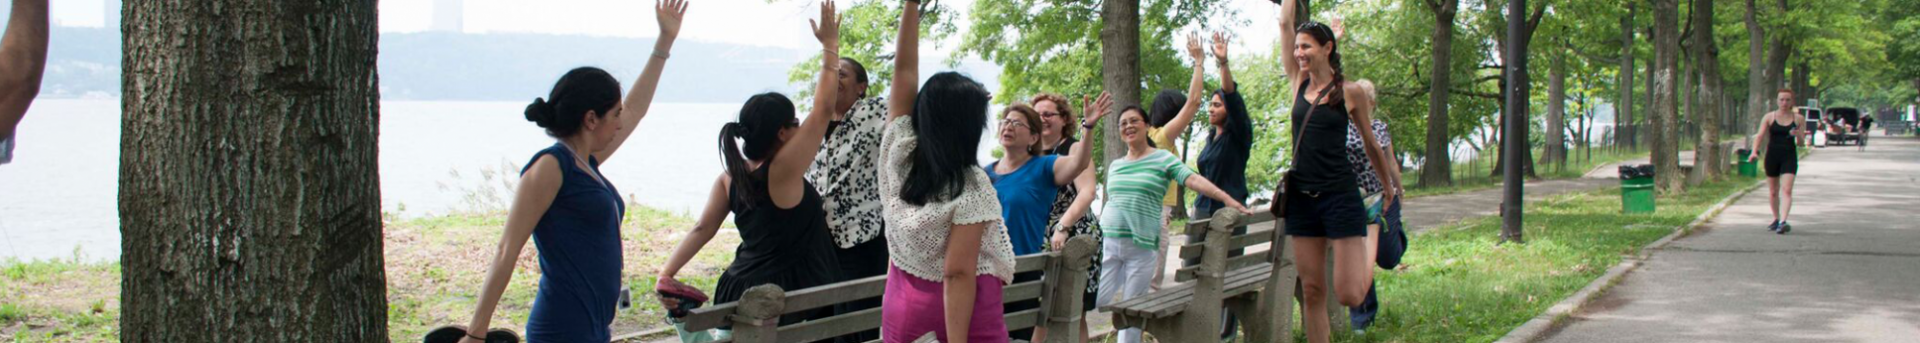 walking program participants stretching in riverside park